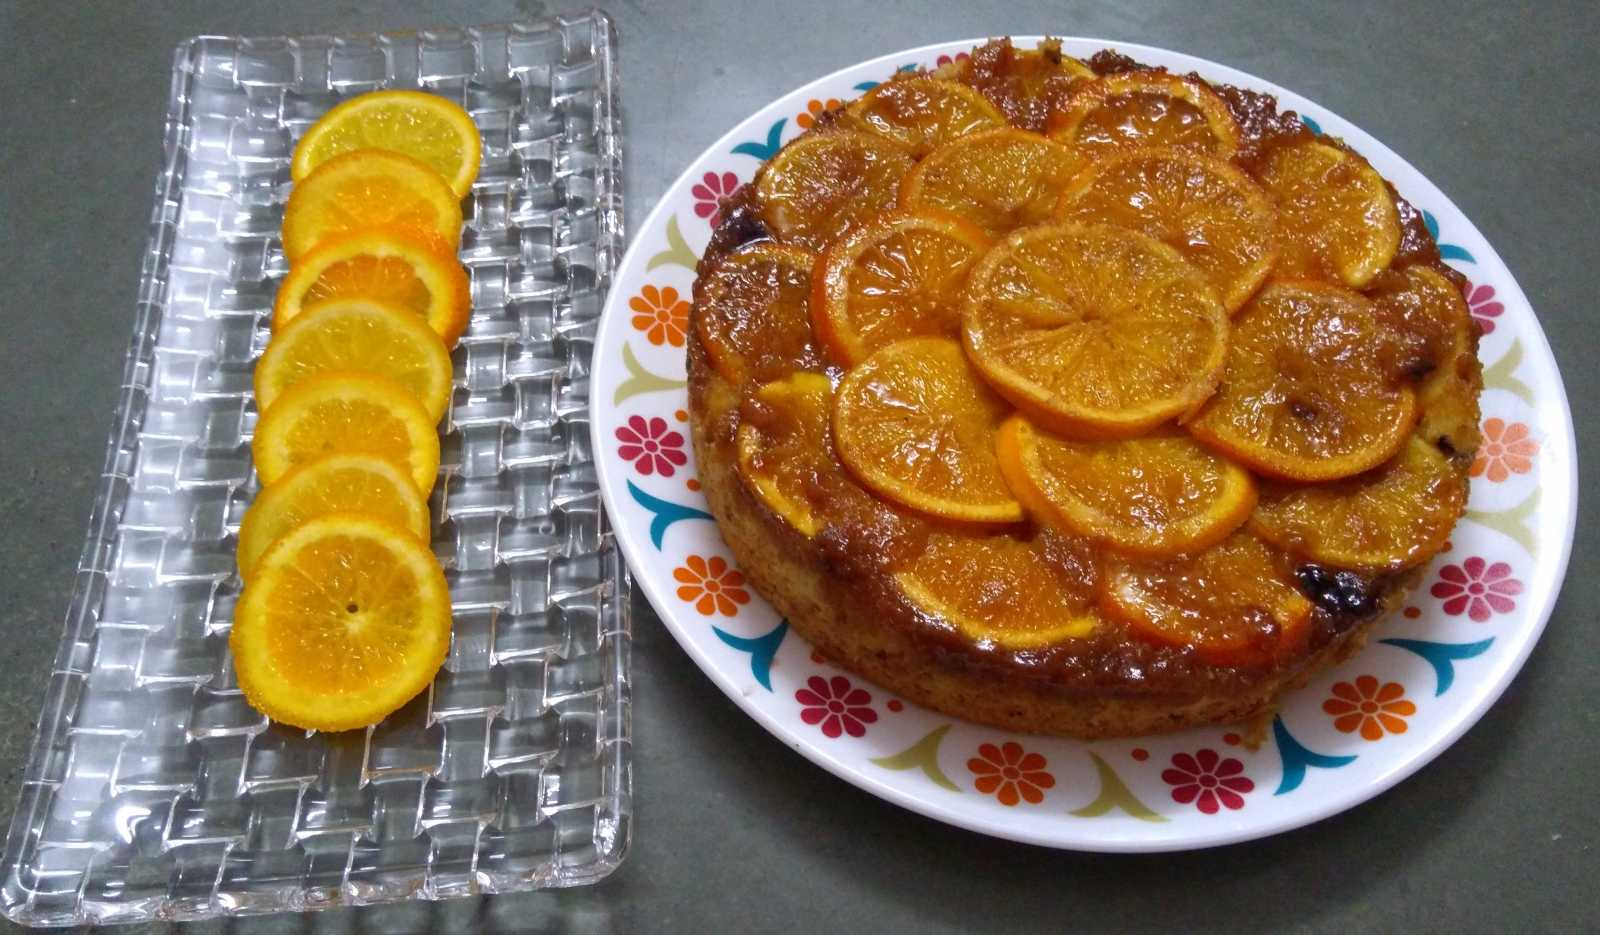 Upside Down Choco Orange Cake Recipe